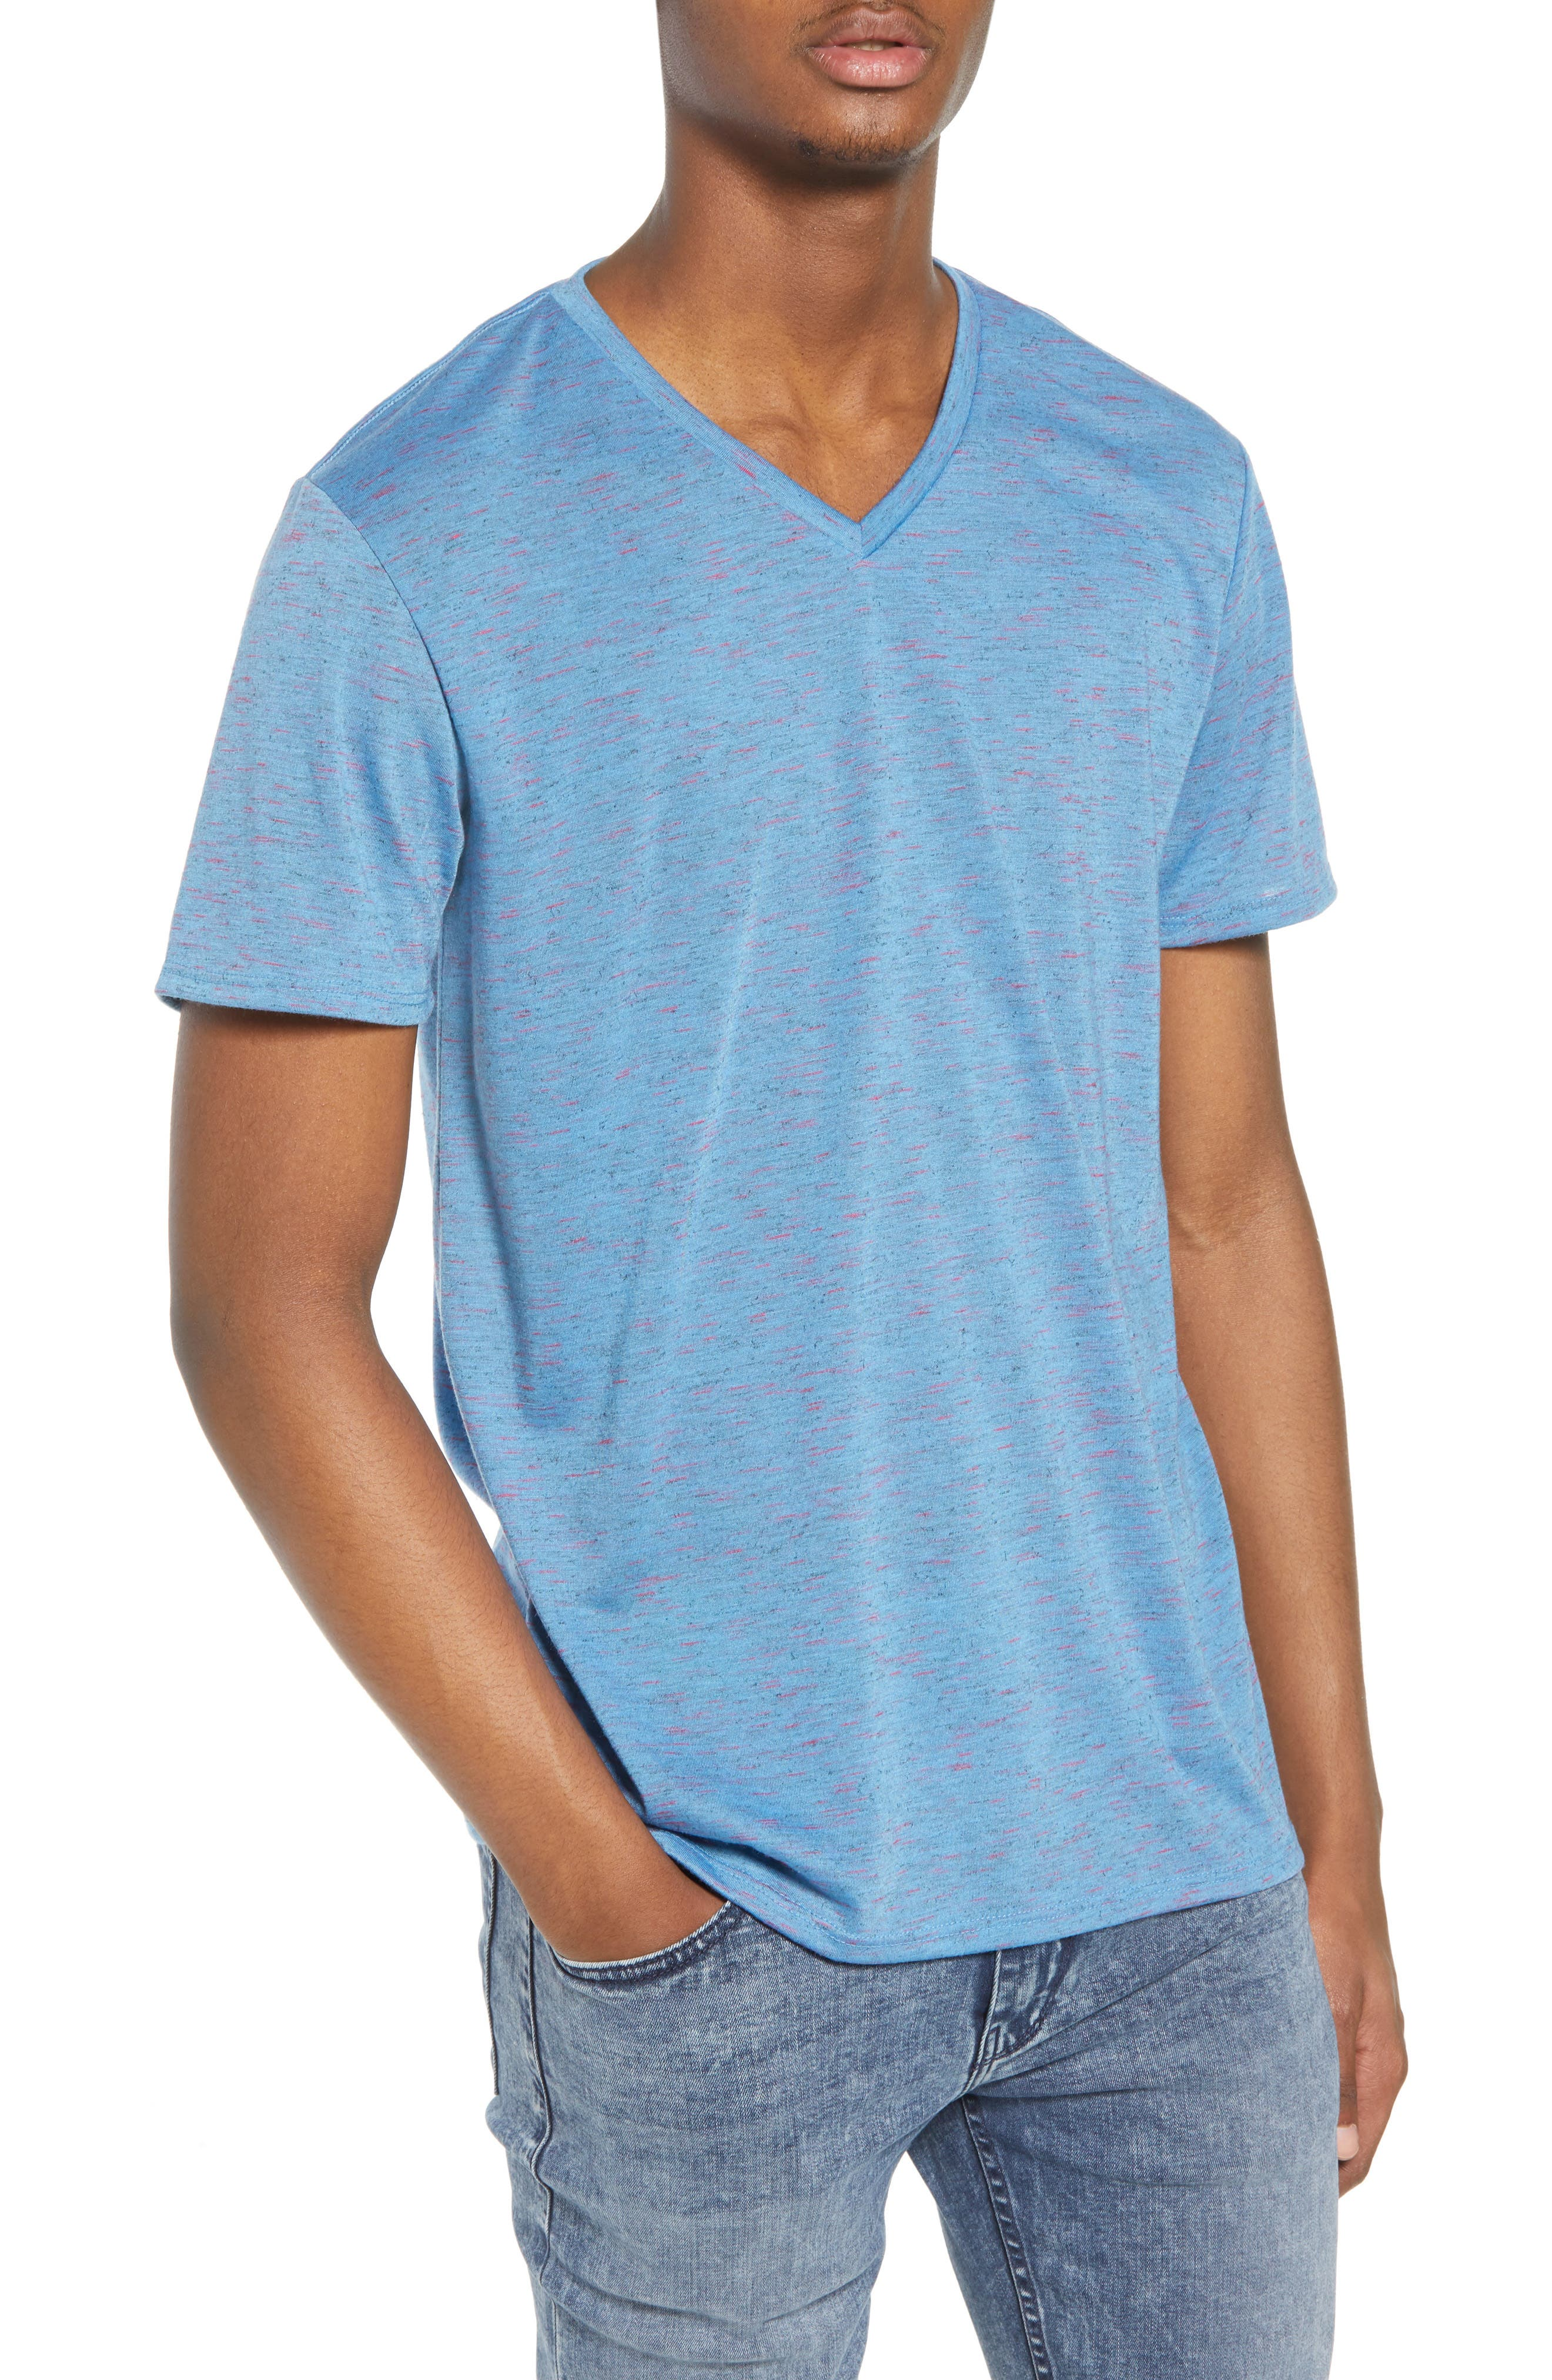 The Rail Streaky V-Neck T-Shirt (2 for $30)